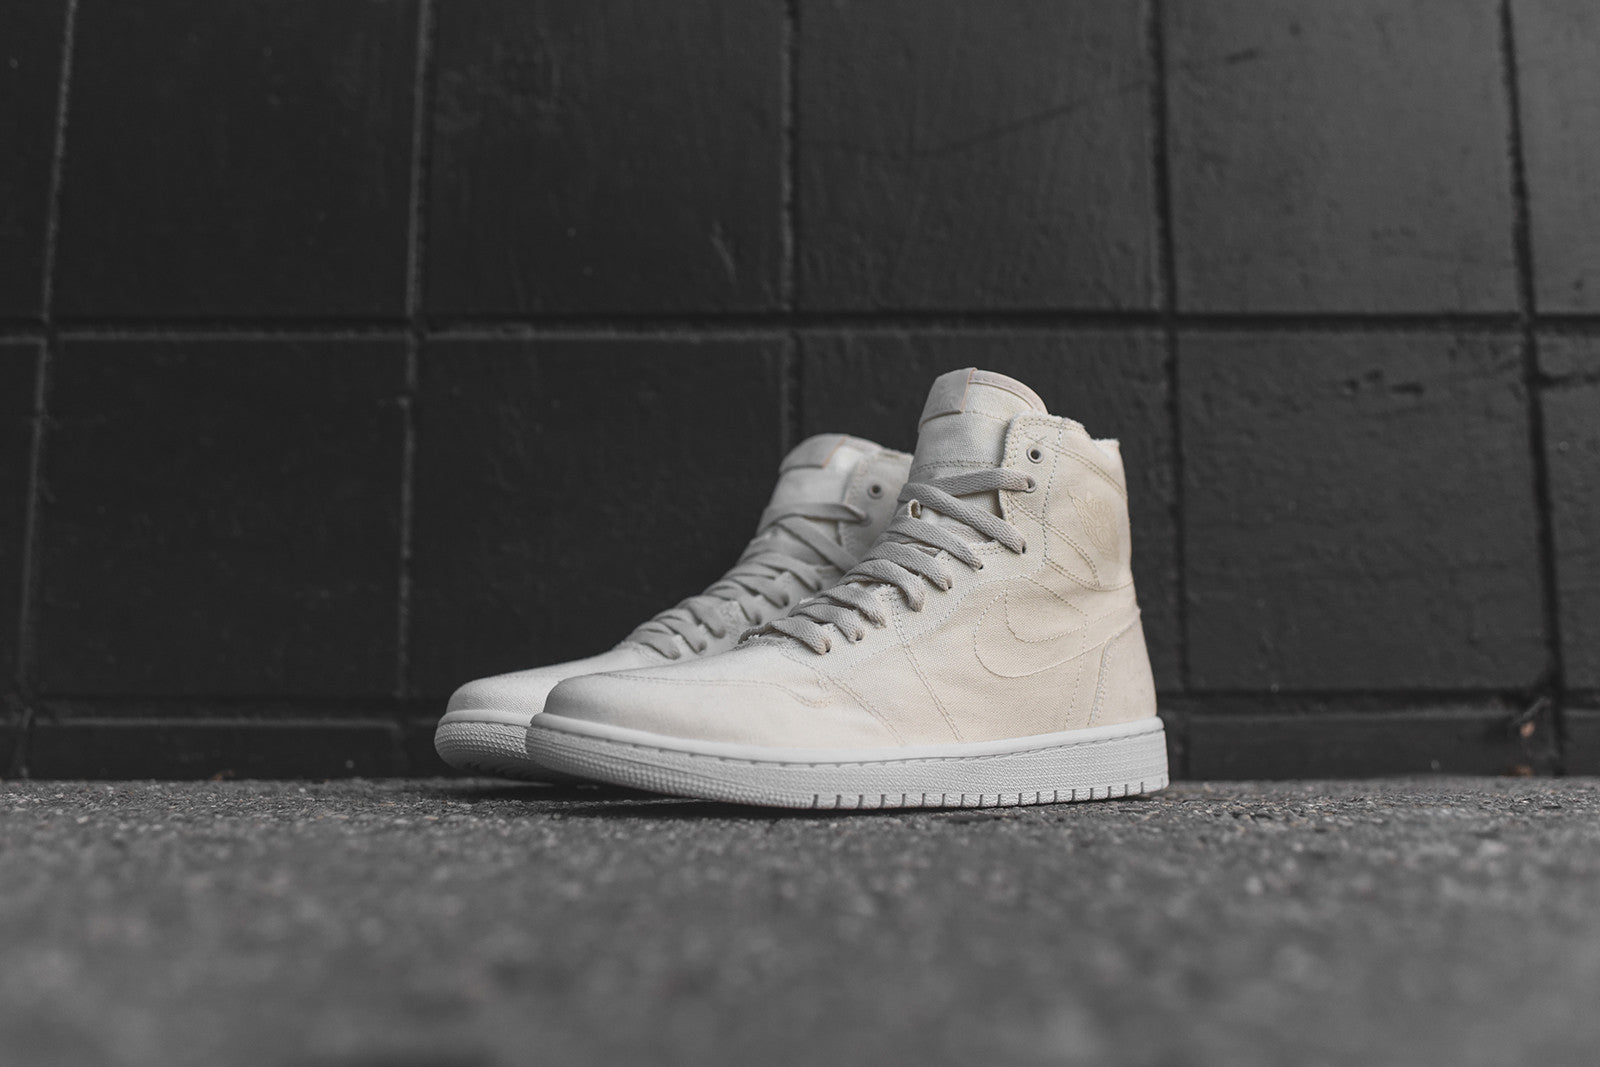 Nike Air Jordan 1 Retro High Decon - Parchment